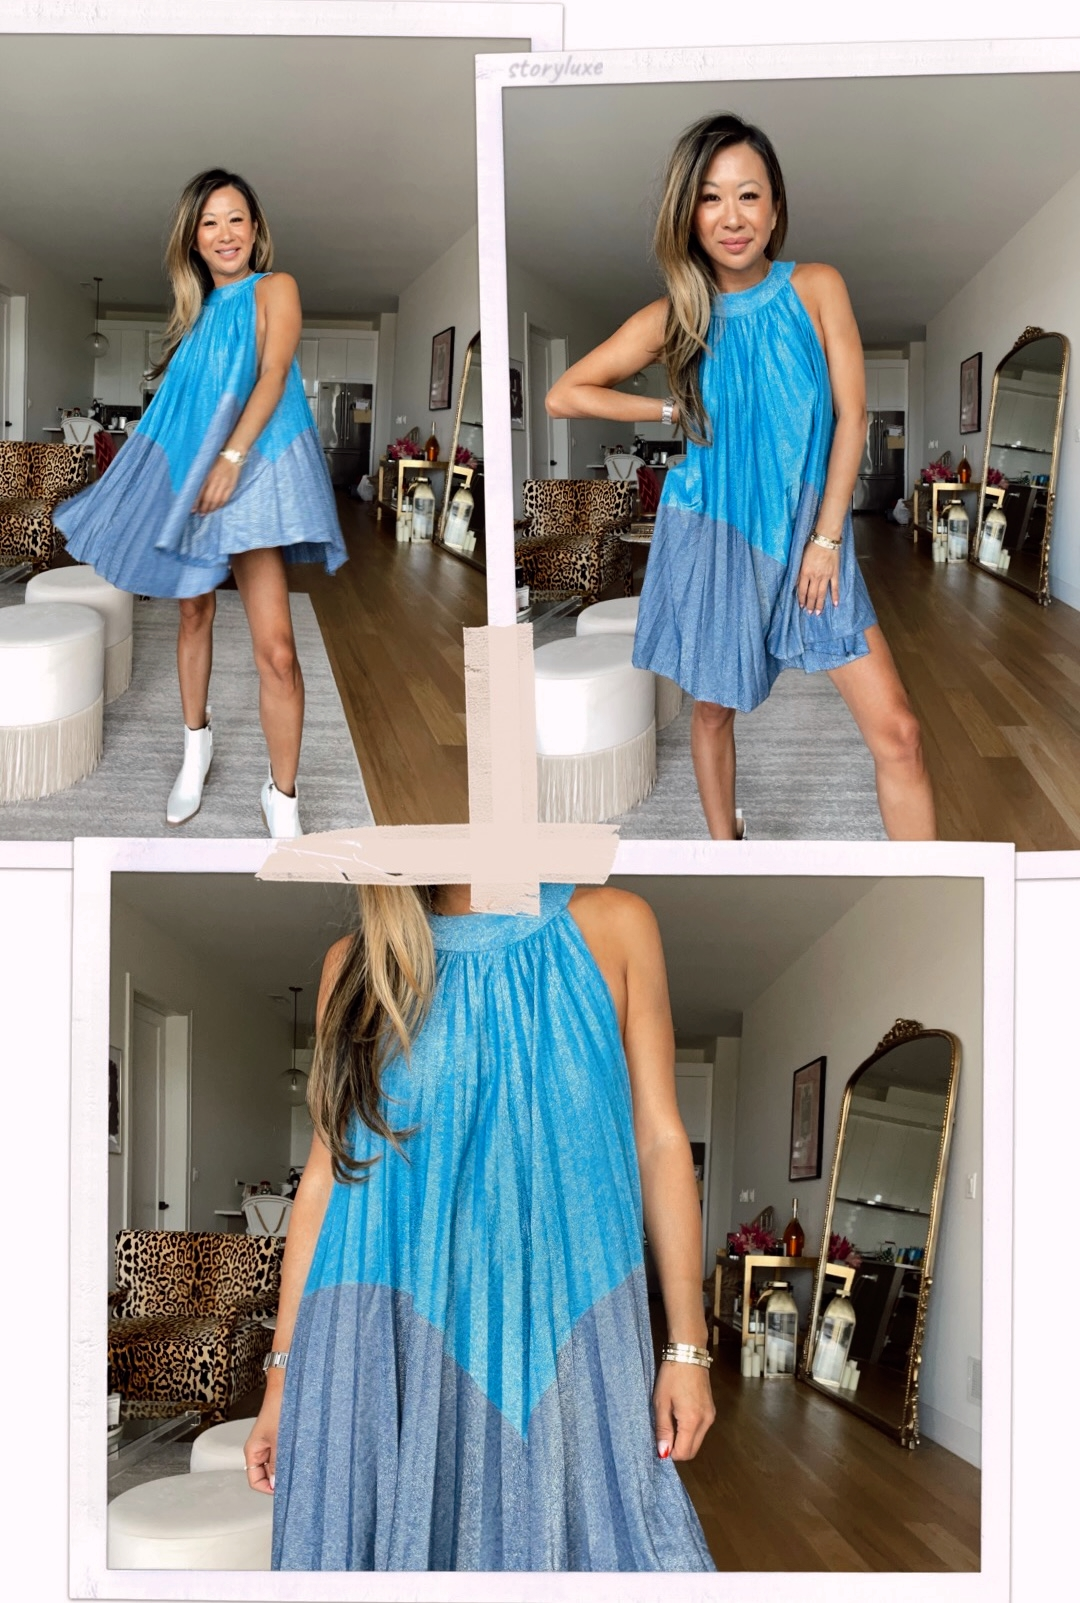 Free People Womens Pleated Love Metallic Mini Dress, Free People dress, summer dress ideas, summer dress outfit ideas, white boots and dress outfit, Walmart outfits, Walmart style, Affordable Summer Outfits from Walmart